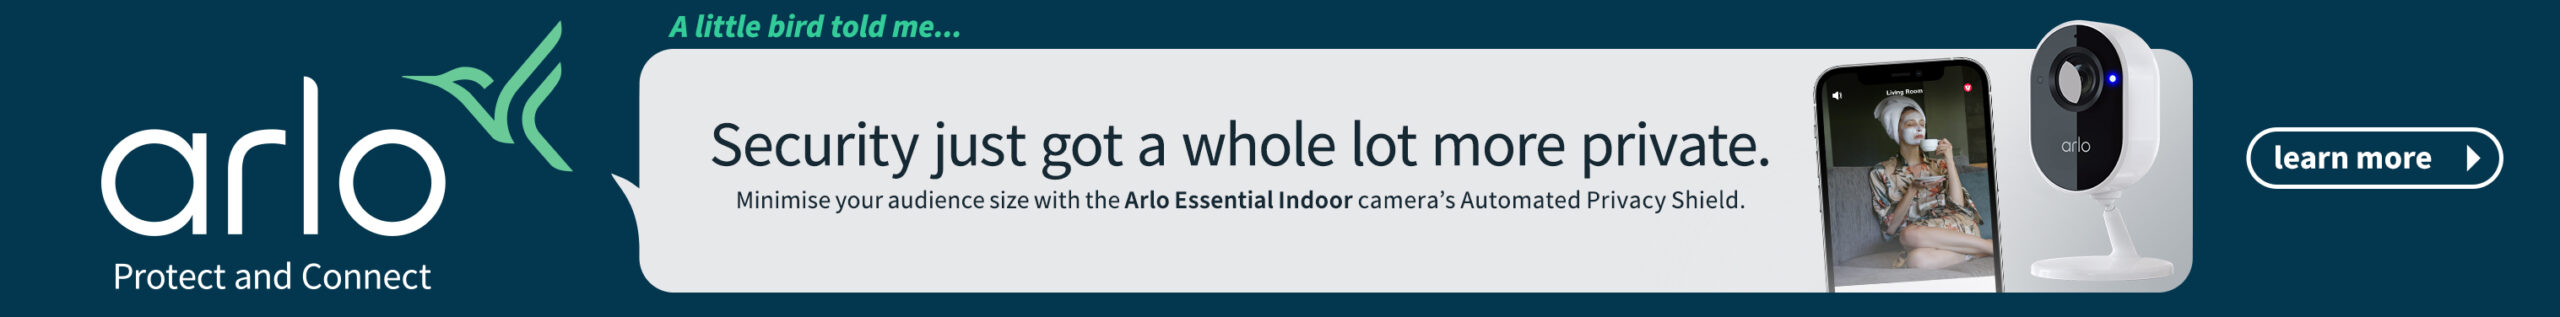 ARL0355 Arlo ESS Indoor Generic Banner 728x90 V4 scaled Fight Over Avatar Rights Samsung Vs Panasonic